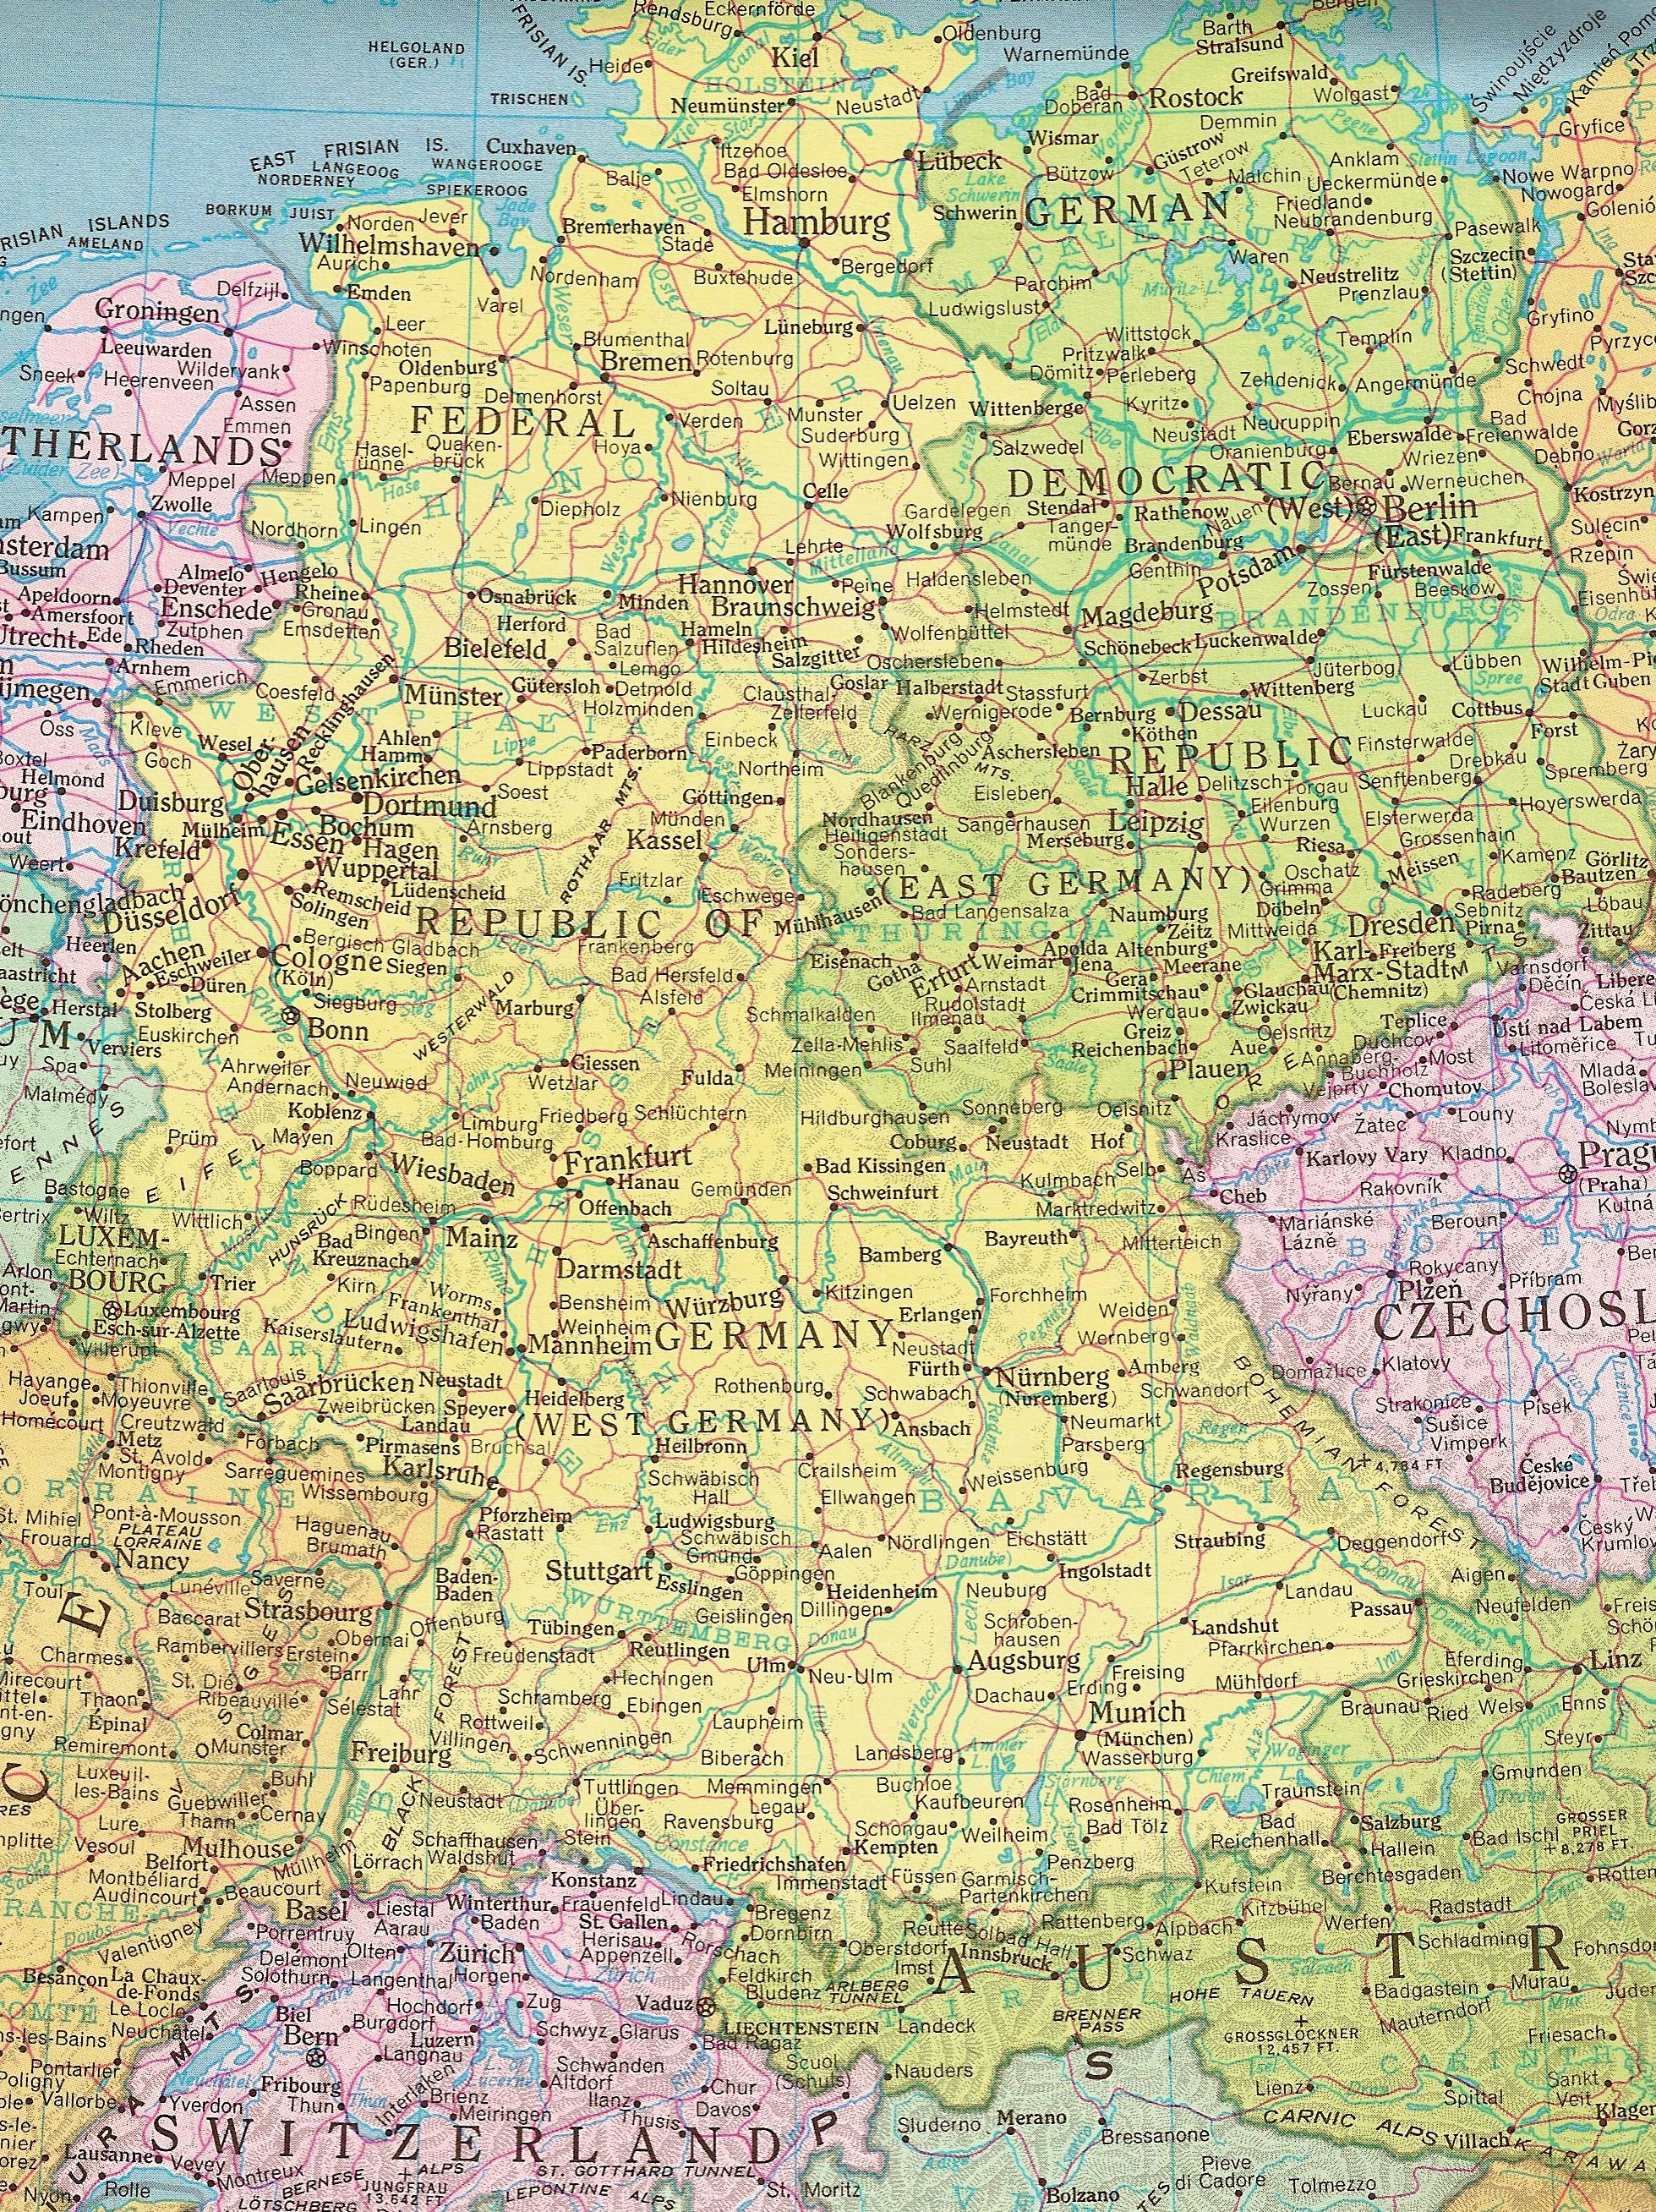 Map Of East Germany West Germany.Former East Germany And West Germany All Things German